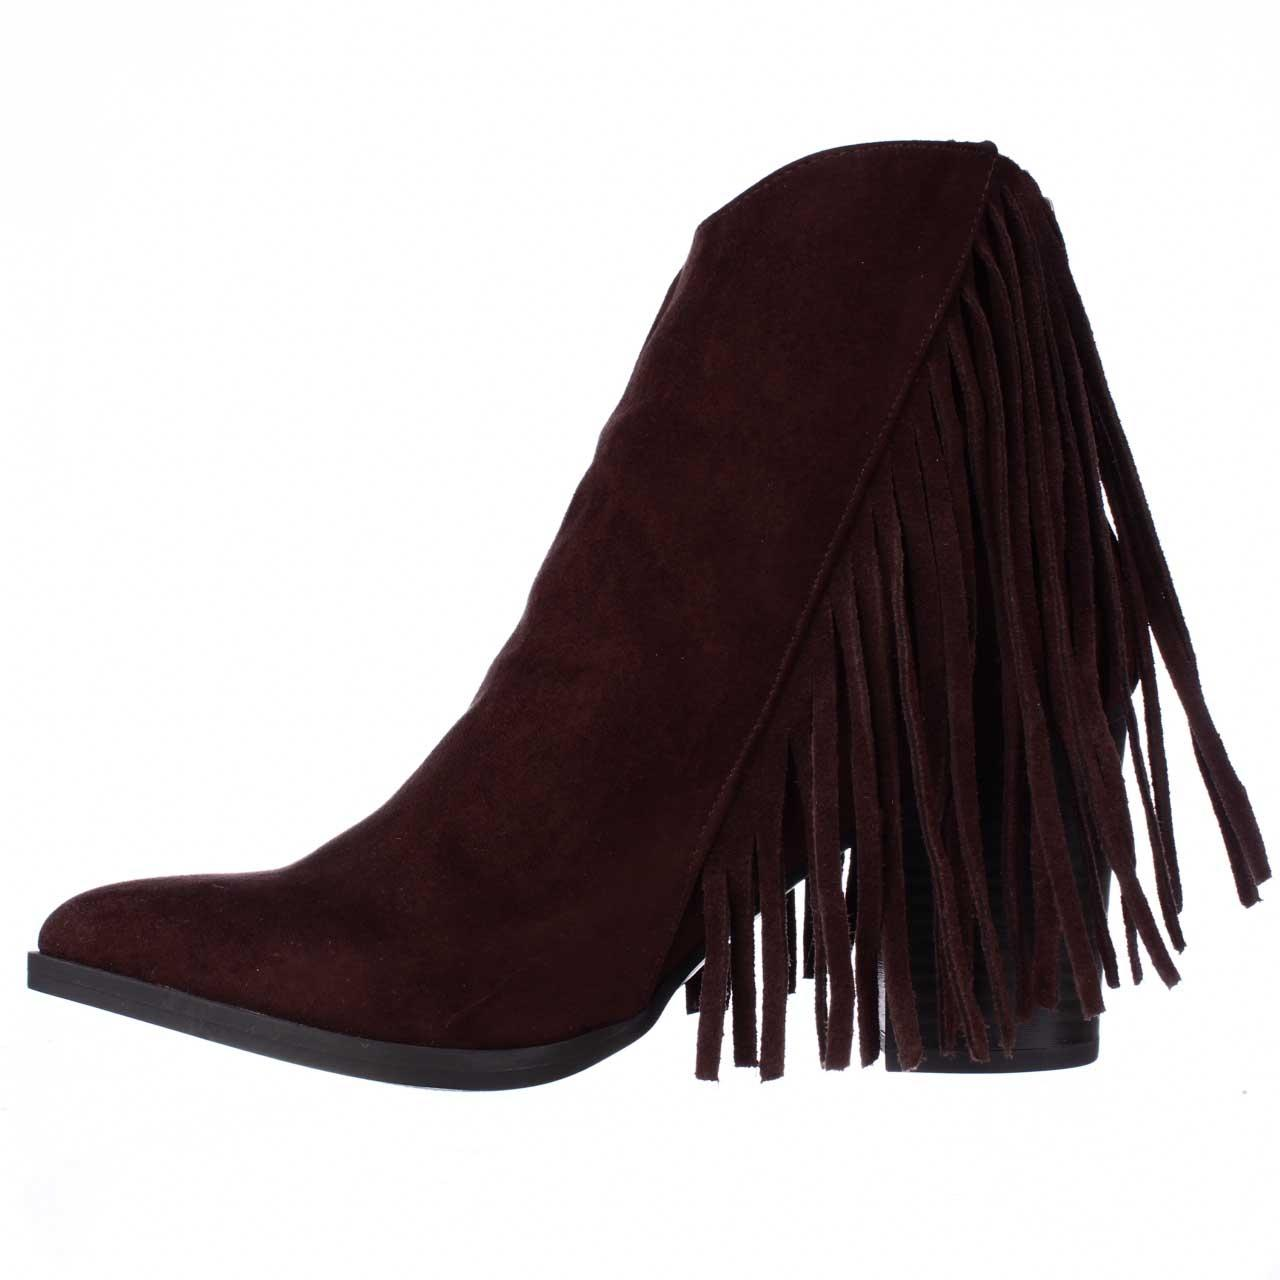 3070c014e46 ... Madden Girl Brown Shaare Fringe Fringe Fringe Western Chestnut  Boots Booties Size US 8.5 Regular ...